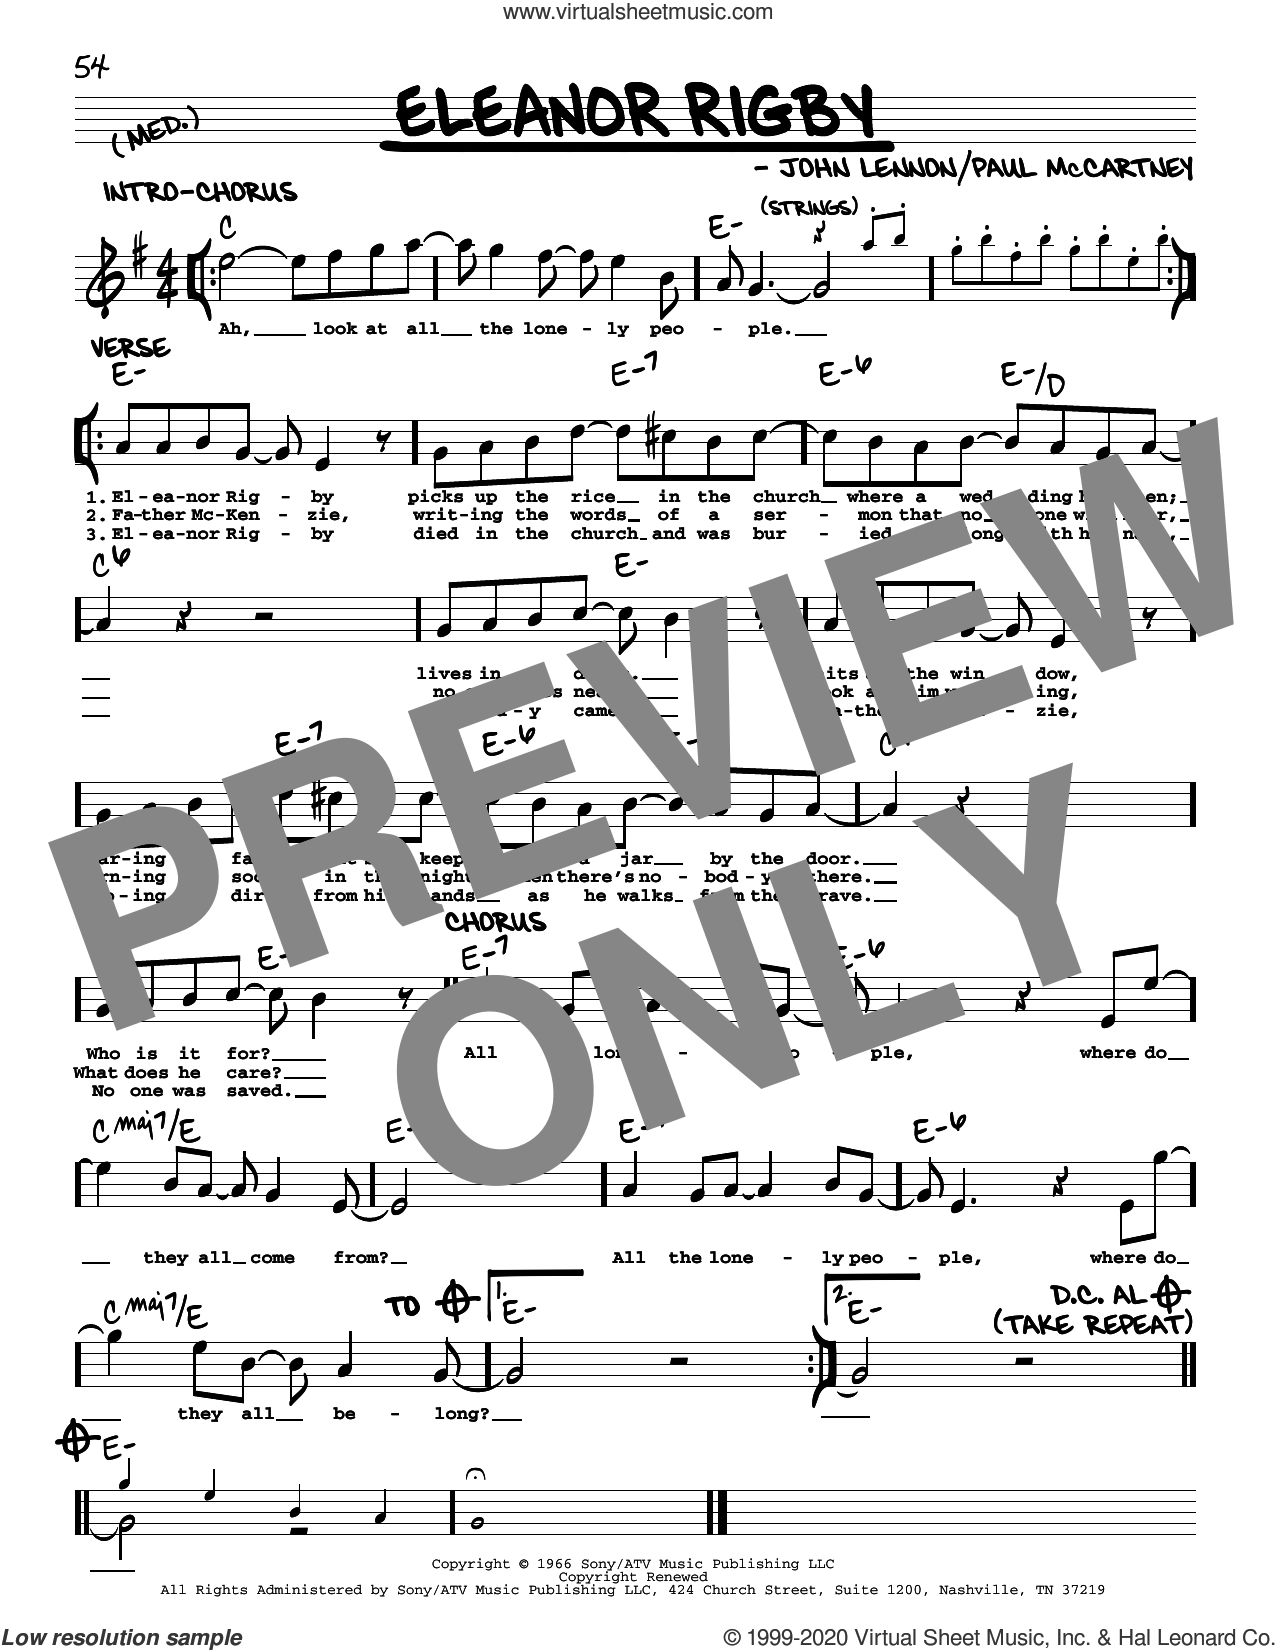 Eleanor Rigby [Jazz version] sheet music for voice and other instruments (real book with lyrics) by The Beatles, John Lennon and Paul McCartney, intermediate skill level